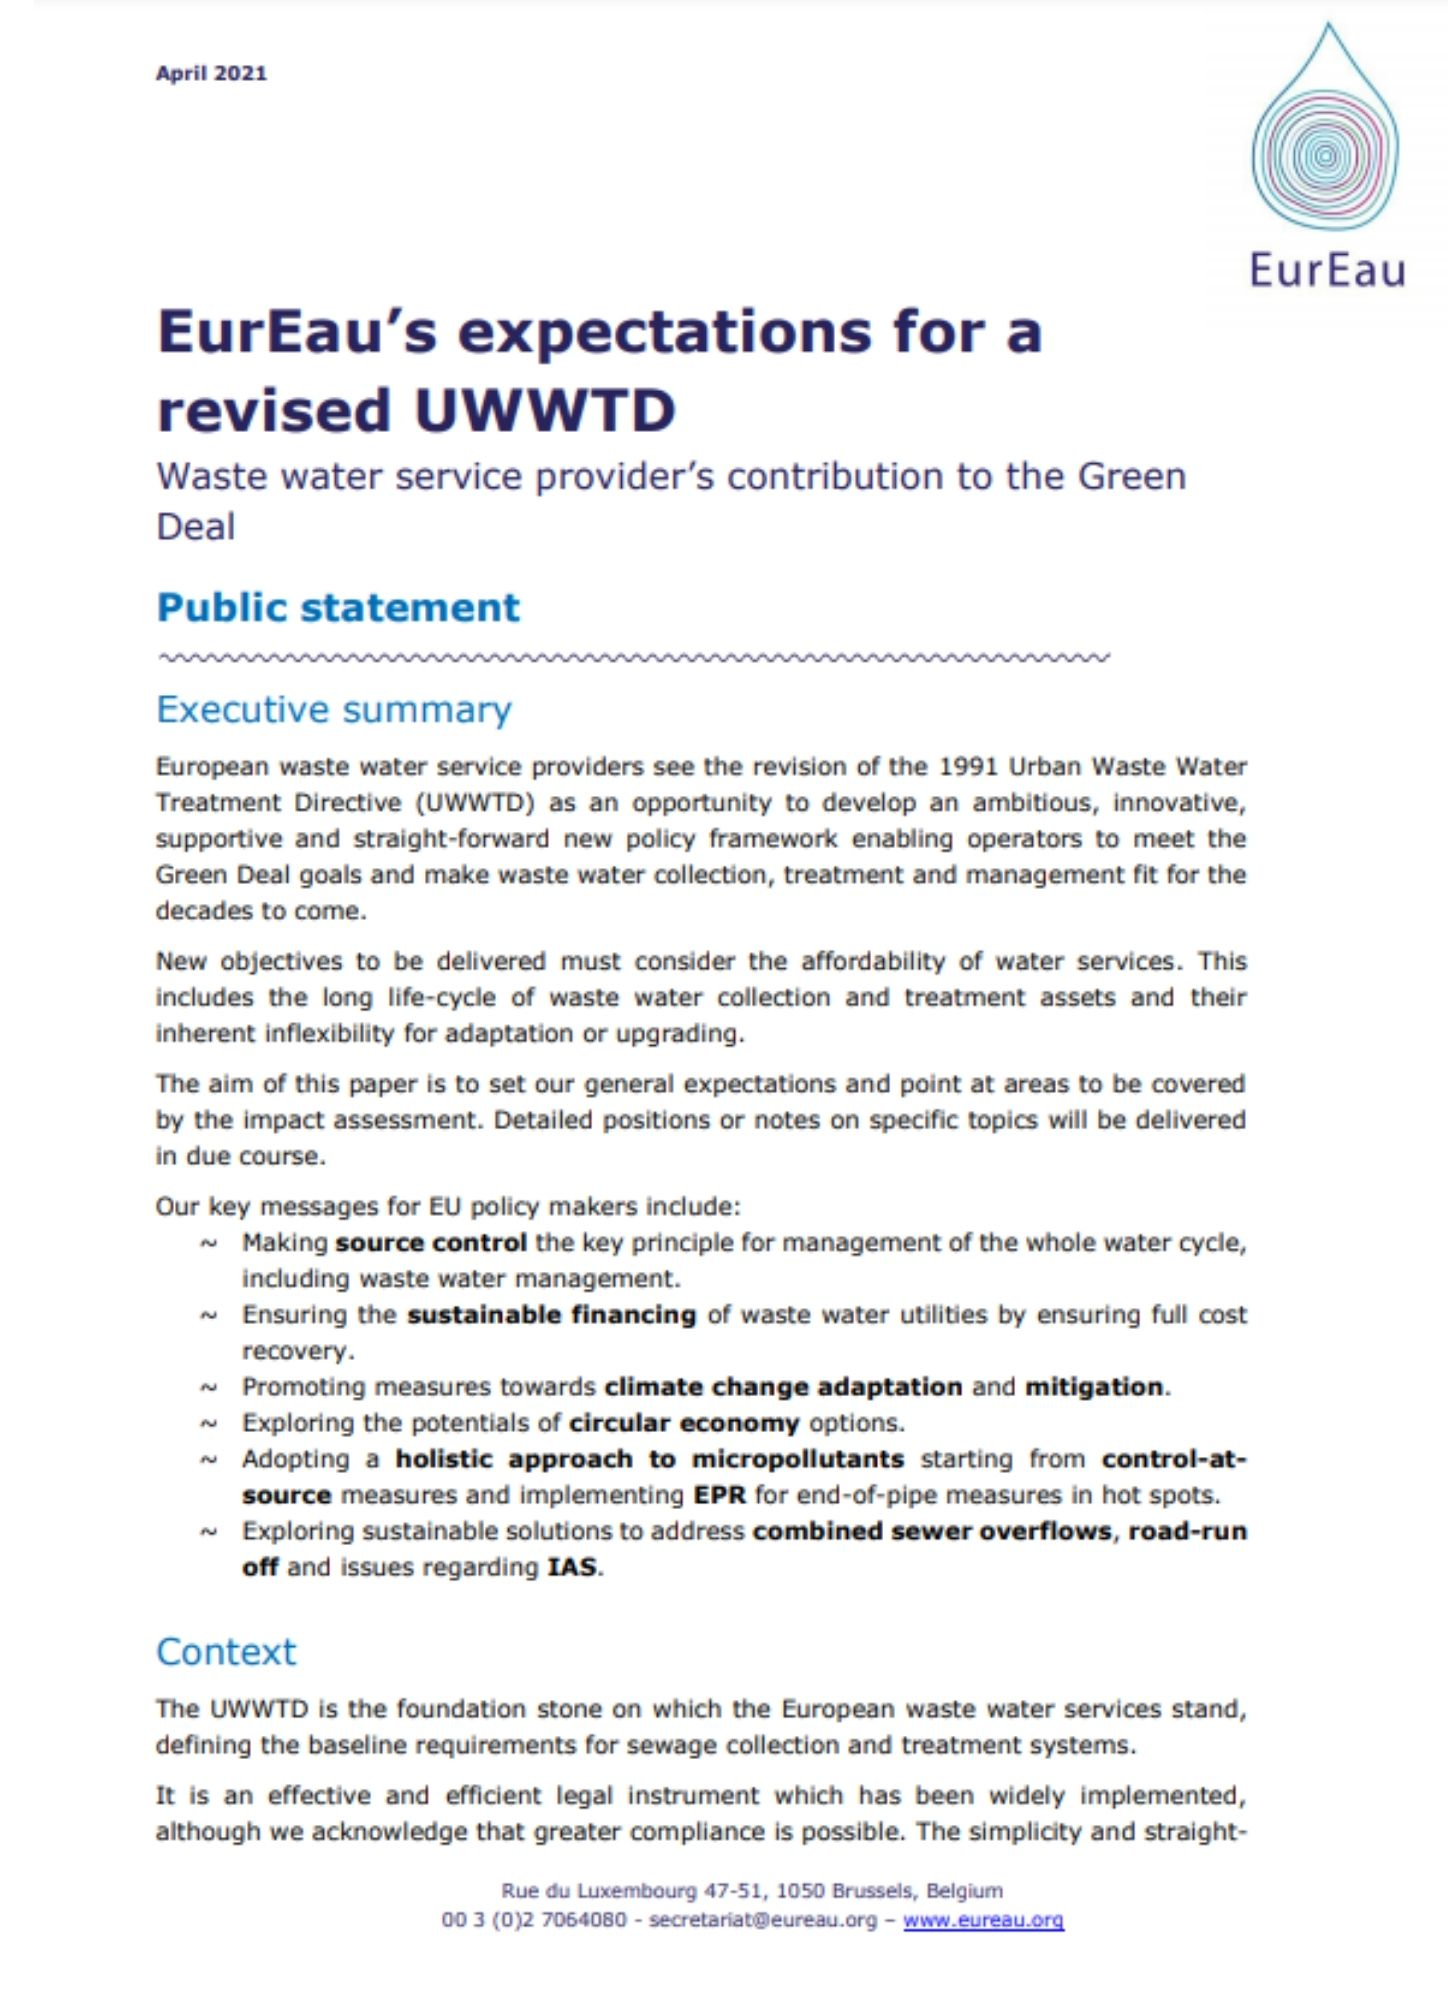 EurEau comment on the public consultation on the revision of the UWWTD